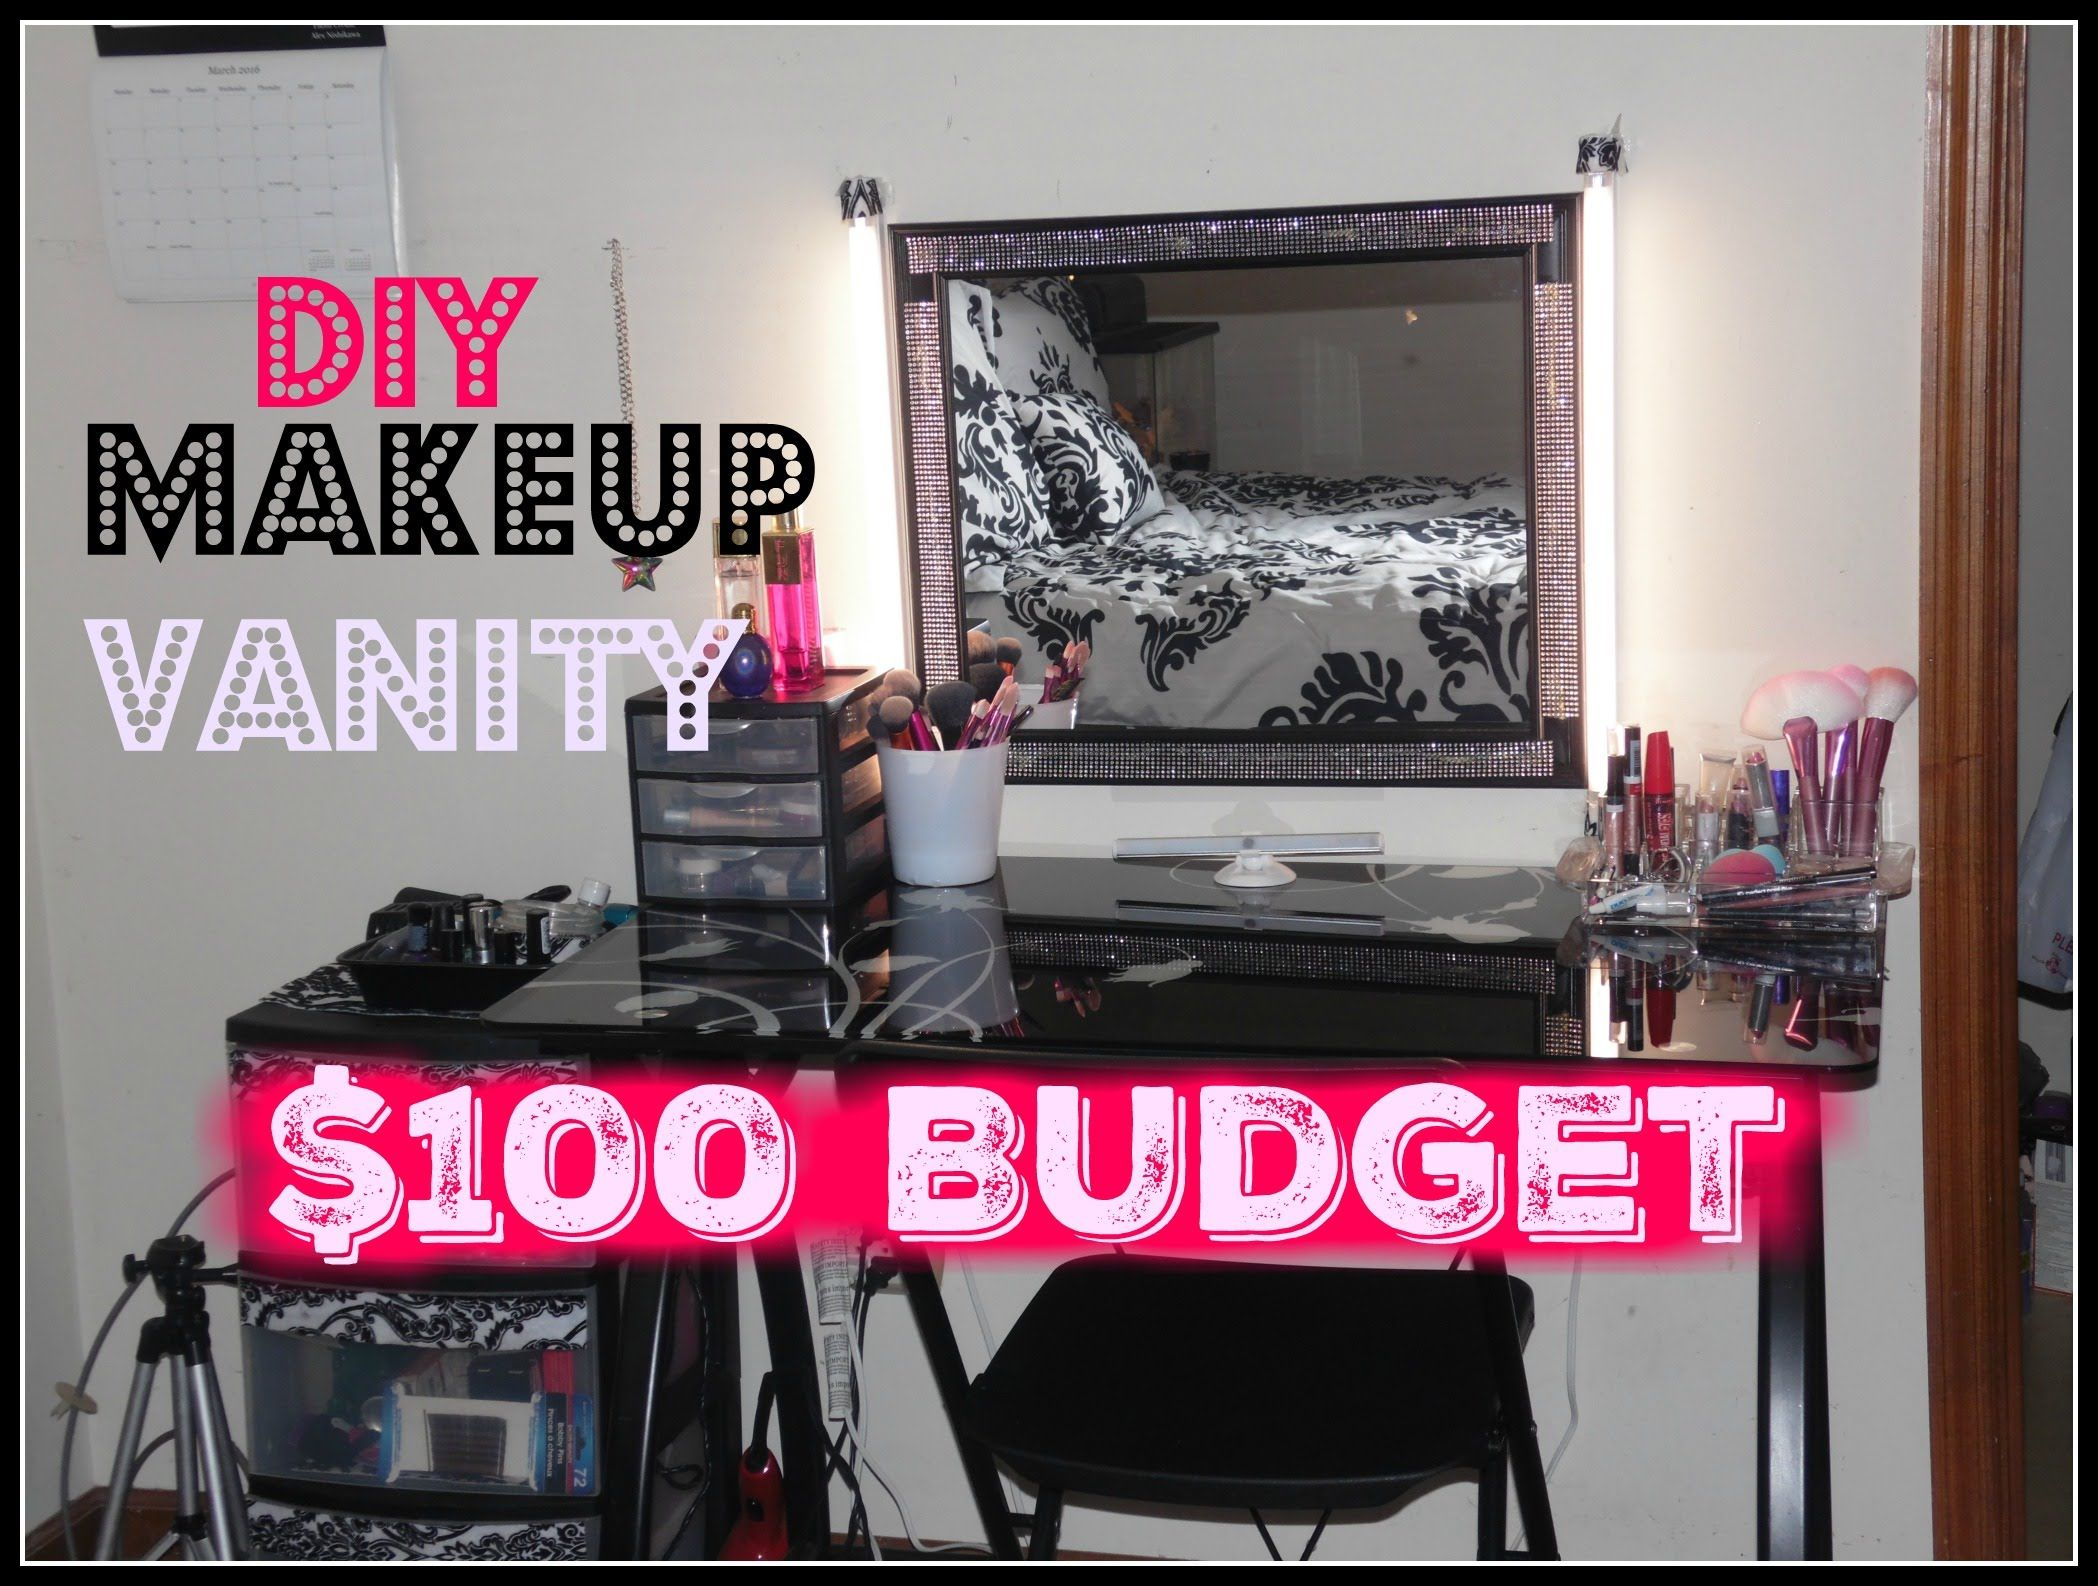 Diy Makeup Vanity On A 100 Budget Makeup Station For Cheap Diy Makeup Vanity Budget Makeup Makeup Station